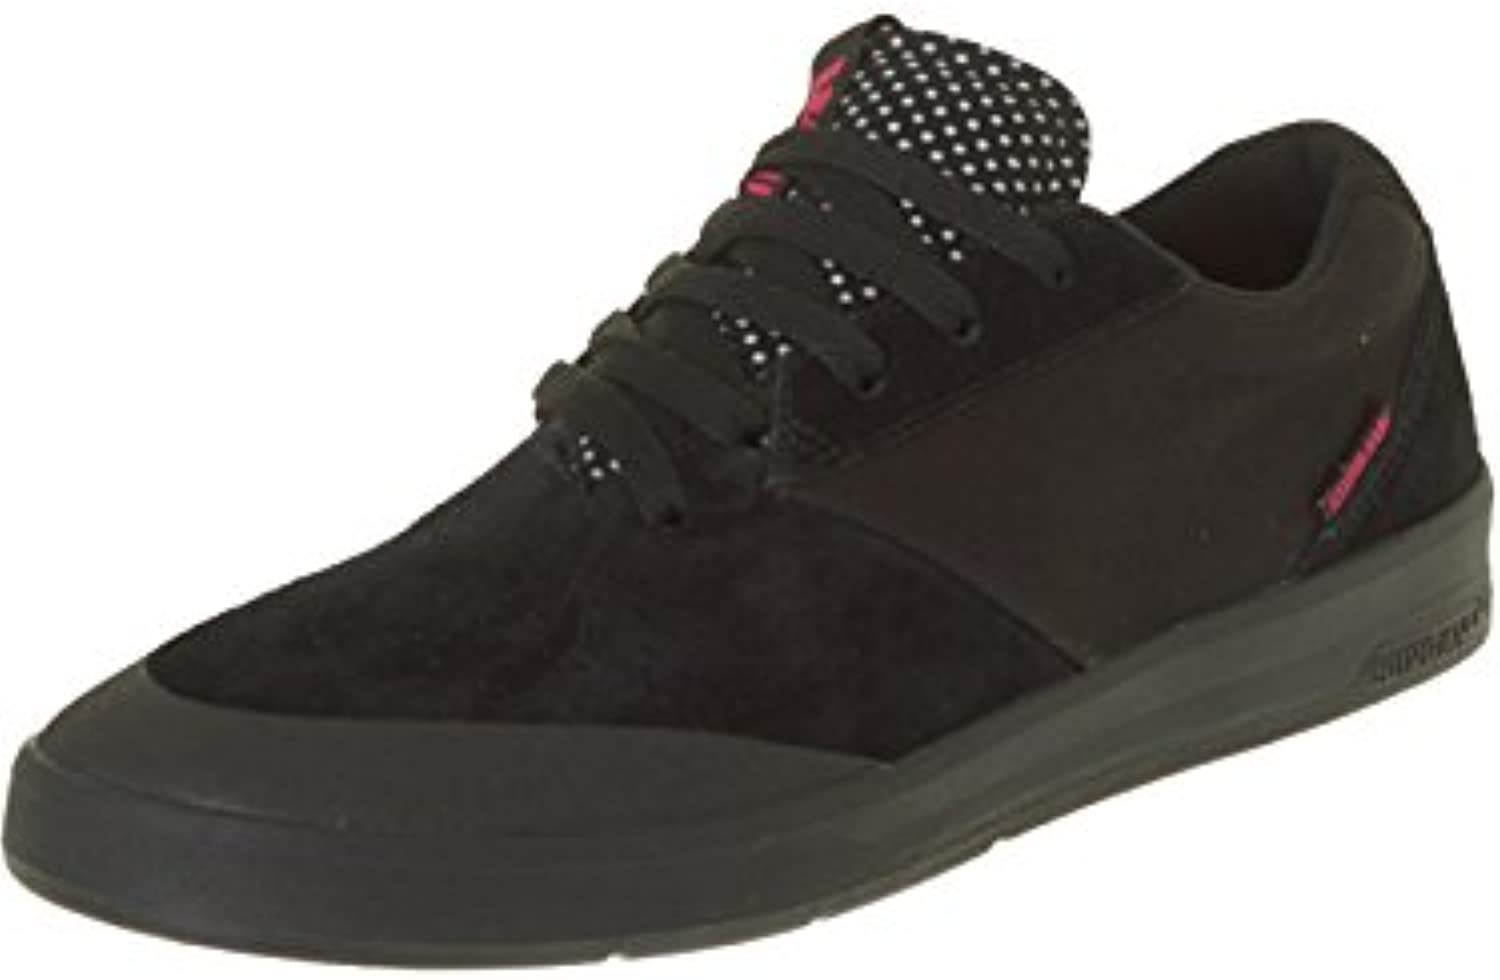 Supra Shifter Lucien Clarke Negro Canvas Shoe, Hombre, Negro, 11 UK  -